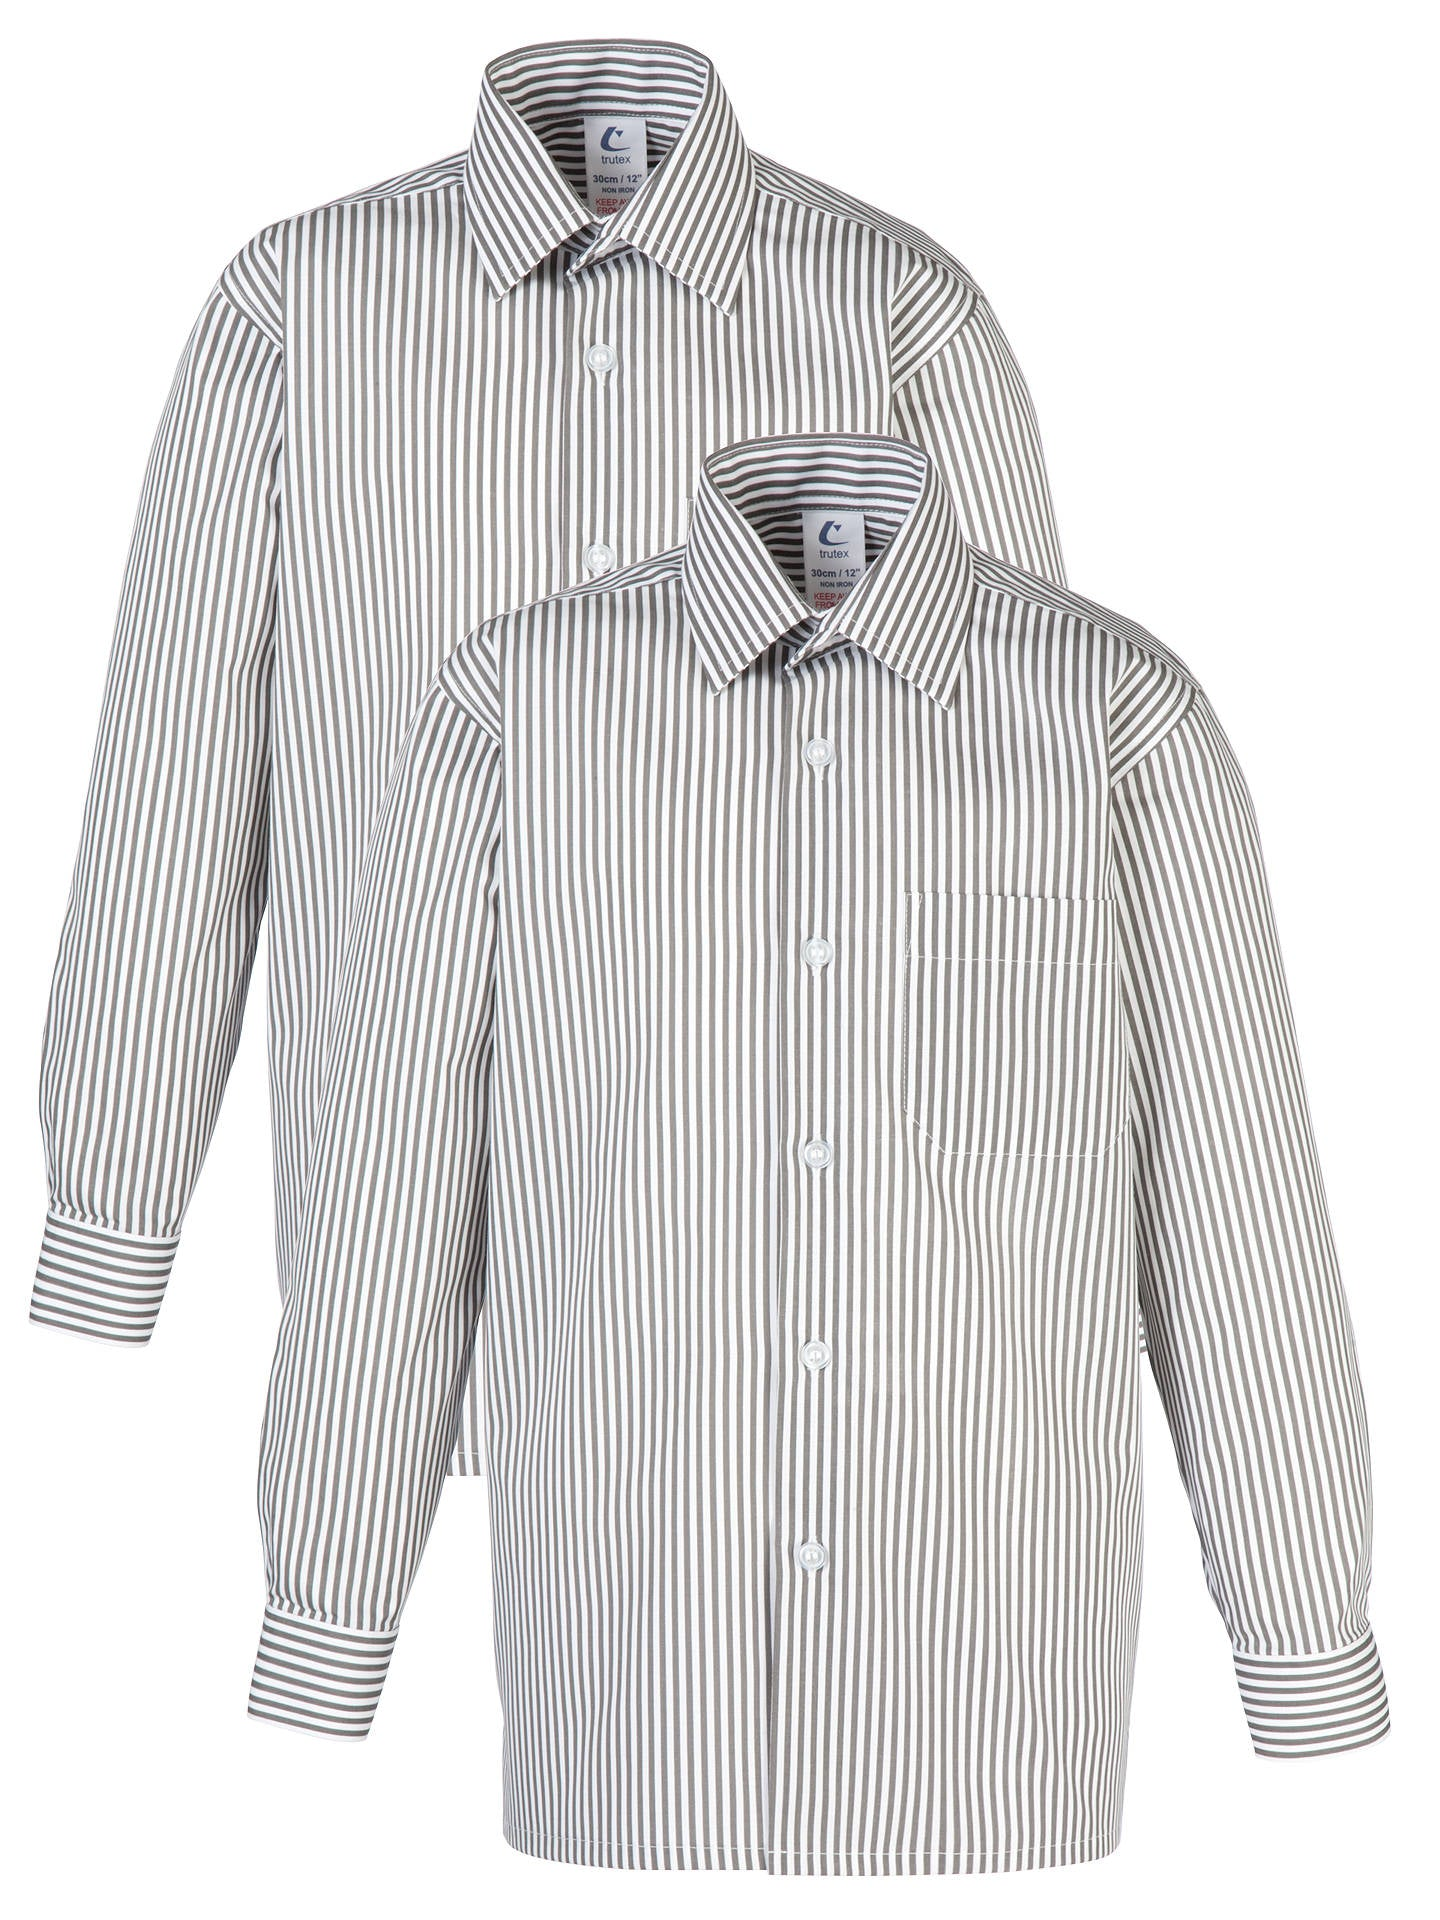 Winter Long Sleeve Shirt